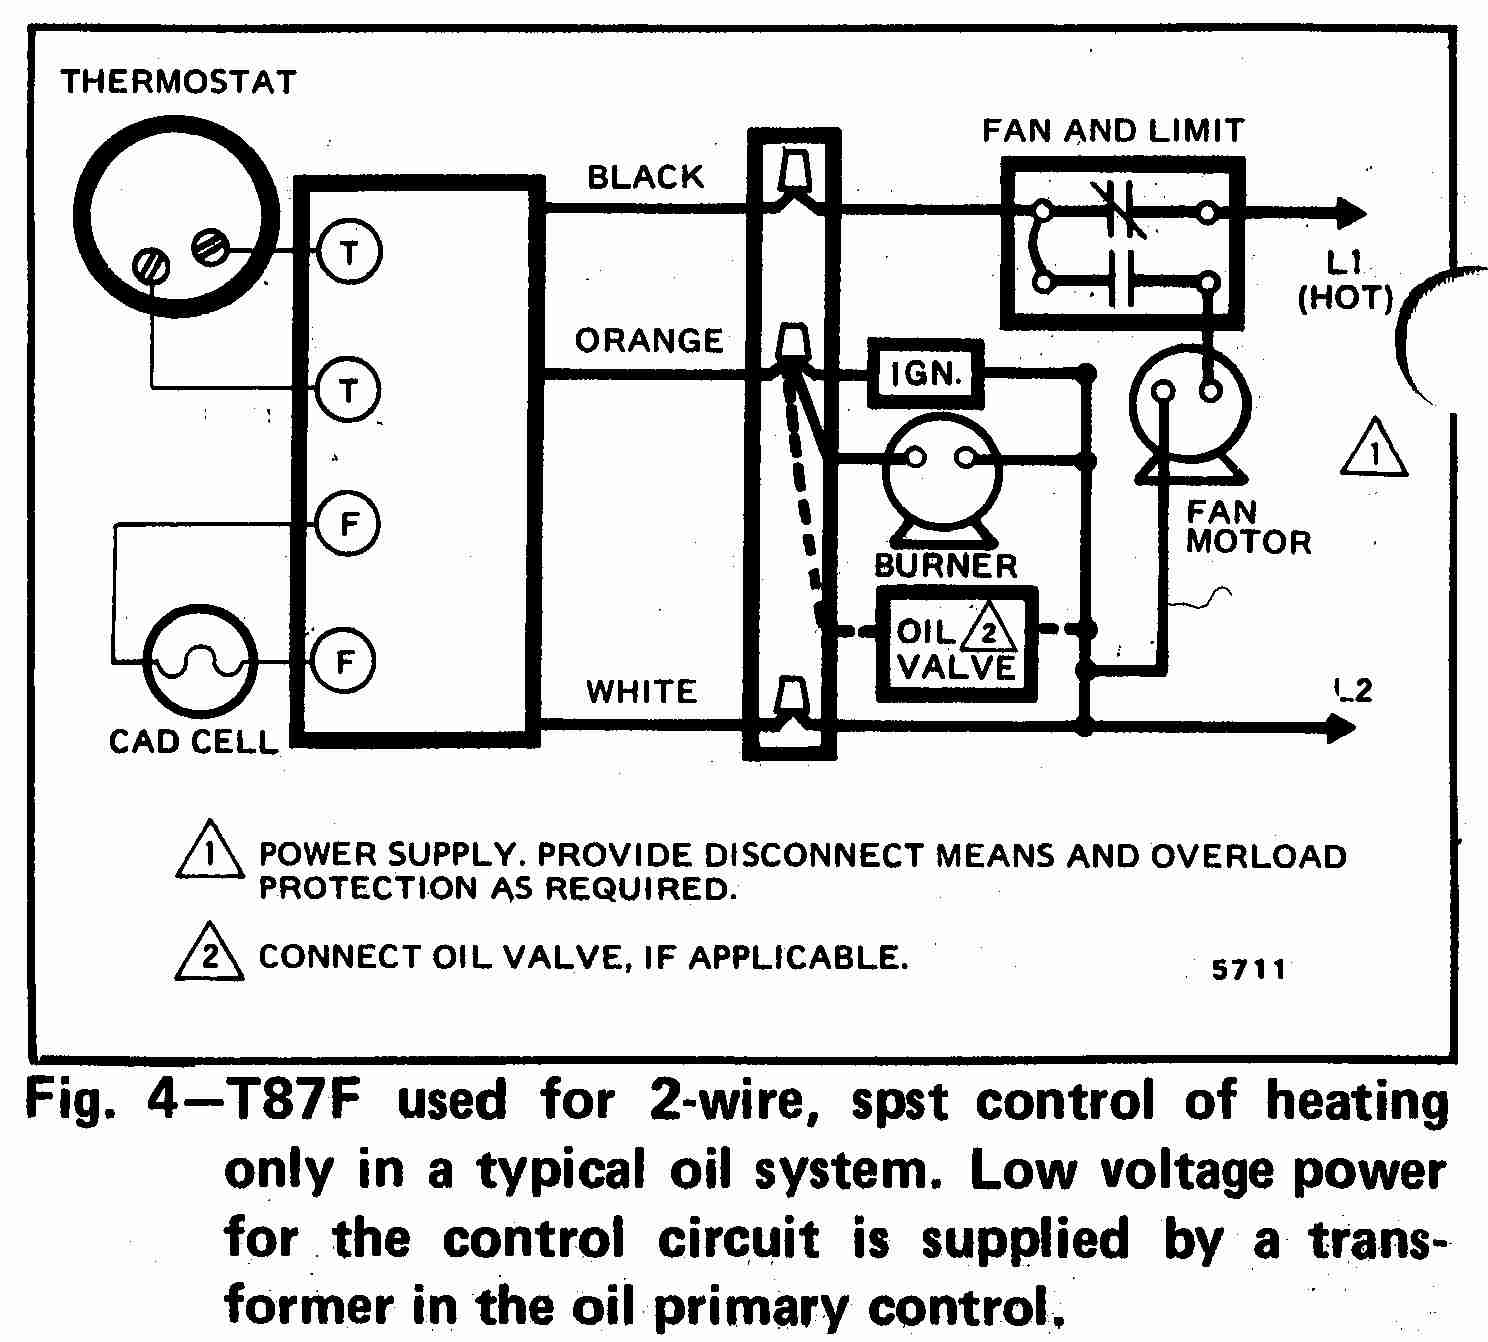 TT_T87F_0002_2W_DJF wiring diagram for thermostat heat pump thermostat wiring \u2022 free LuxPro Thermostat Manual at gsmx.co